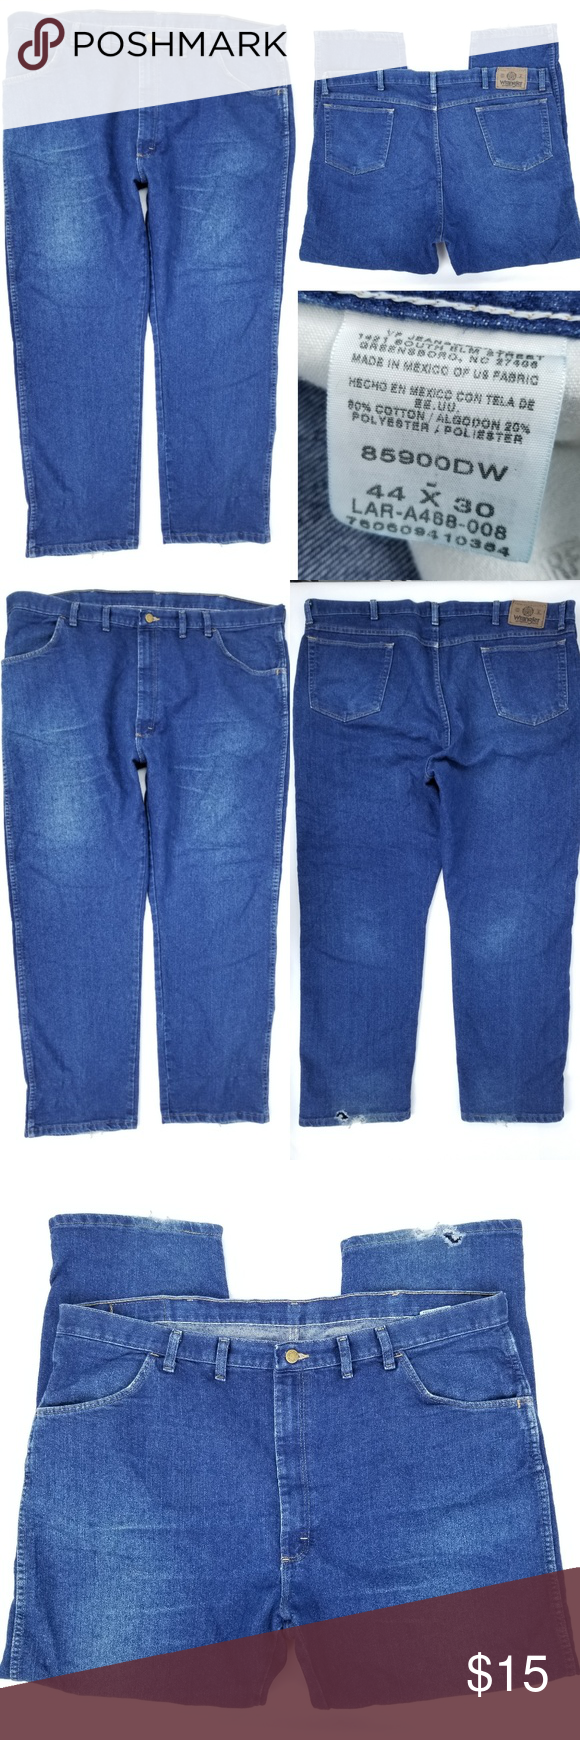 ff57a939 Wrangler Working Man's Jeans 44x30 Actual 45x29 This pair of Wrangler brand  jeans are a dark